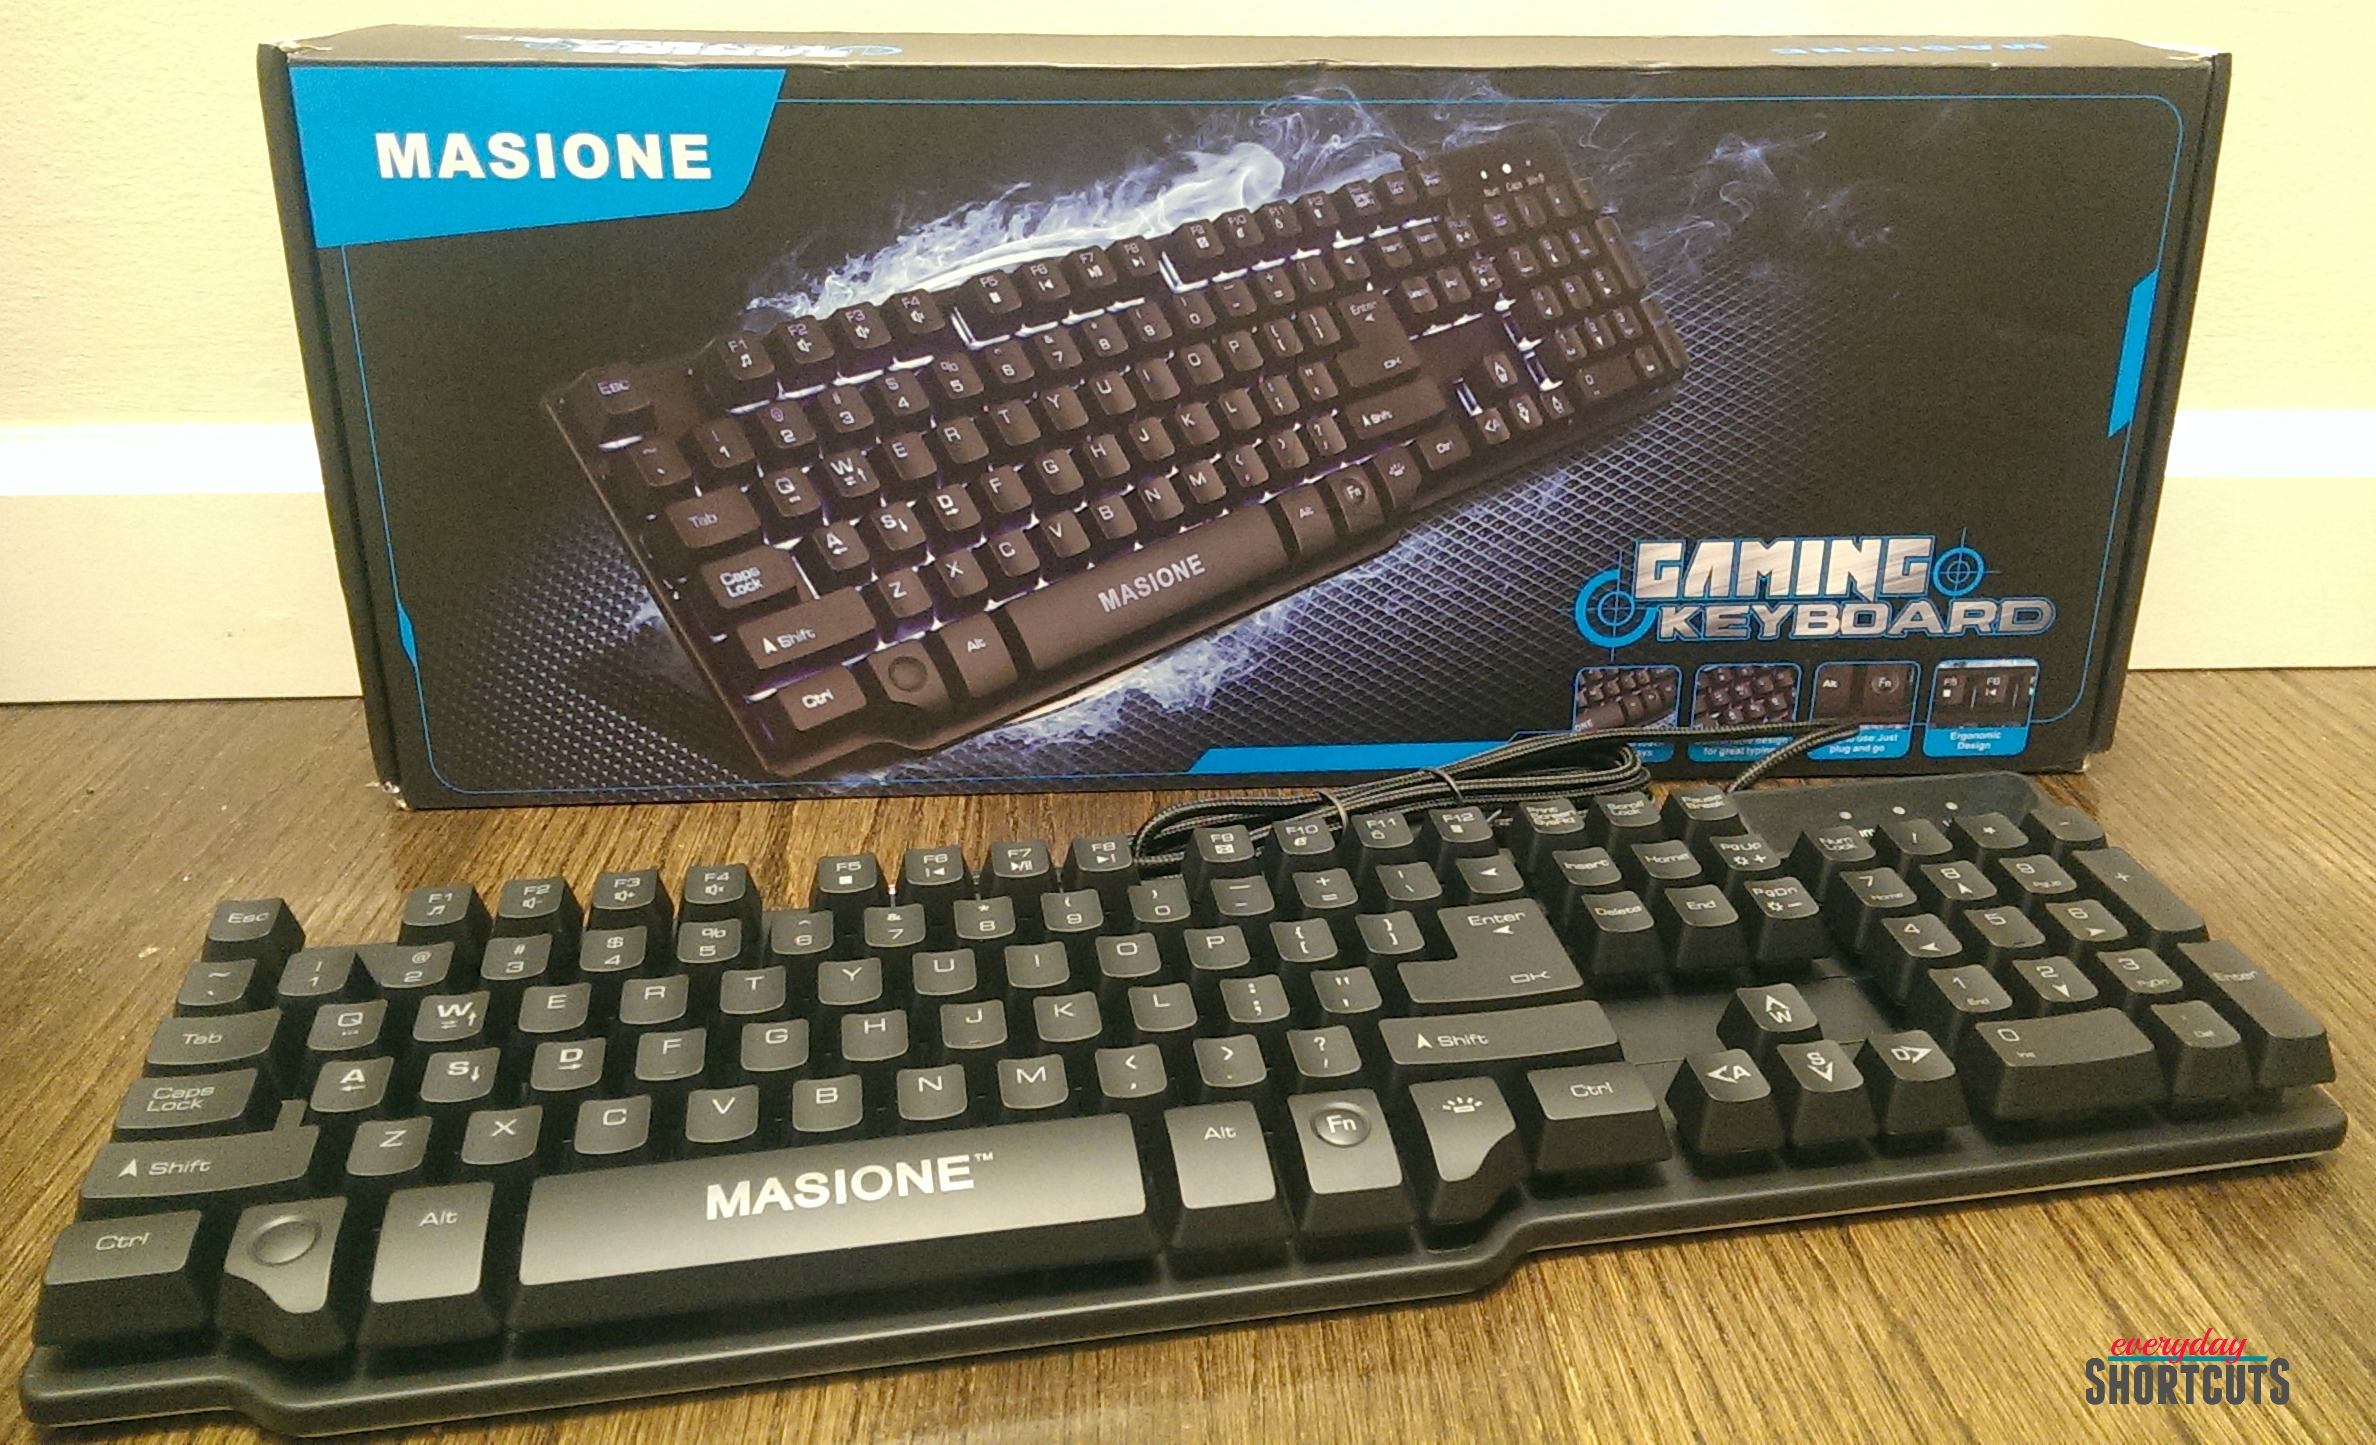 Gaming Keyboard by Masione